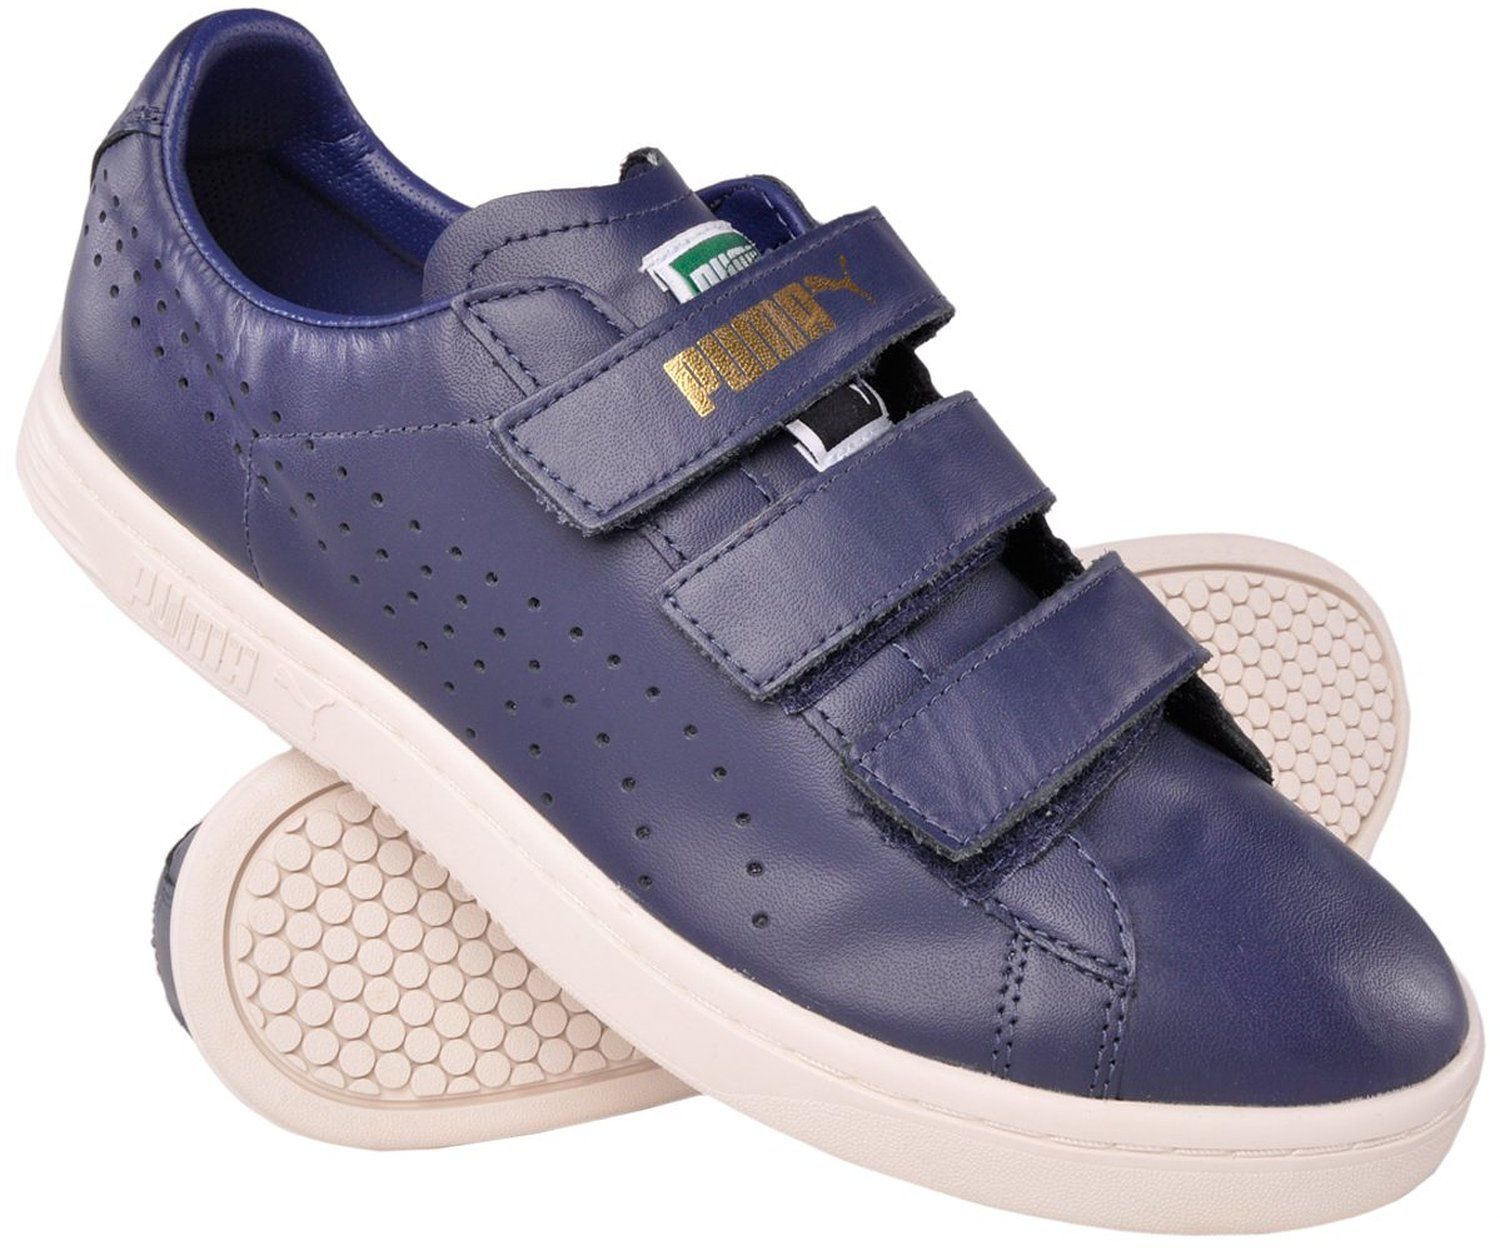 super popular bcb82 1afe8 Amazon.com: Mens Puma Court Star Leather Velcro Sneaker ...